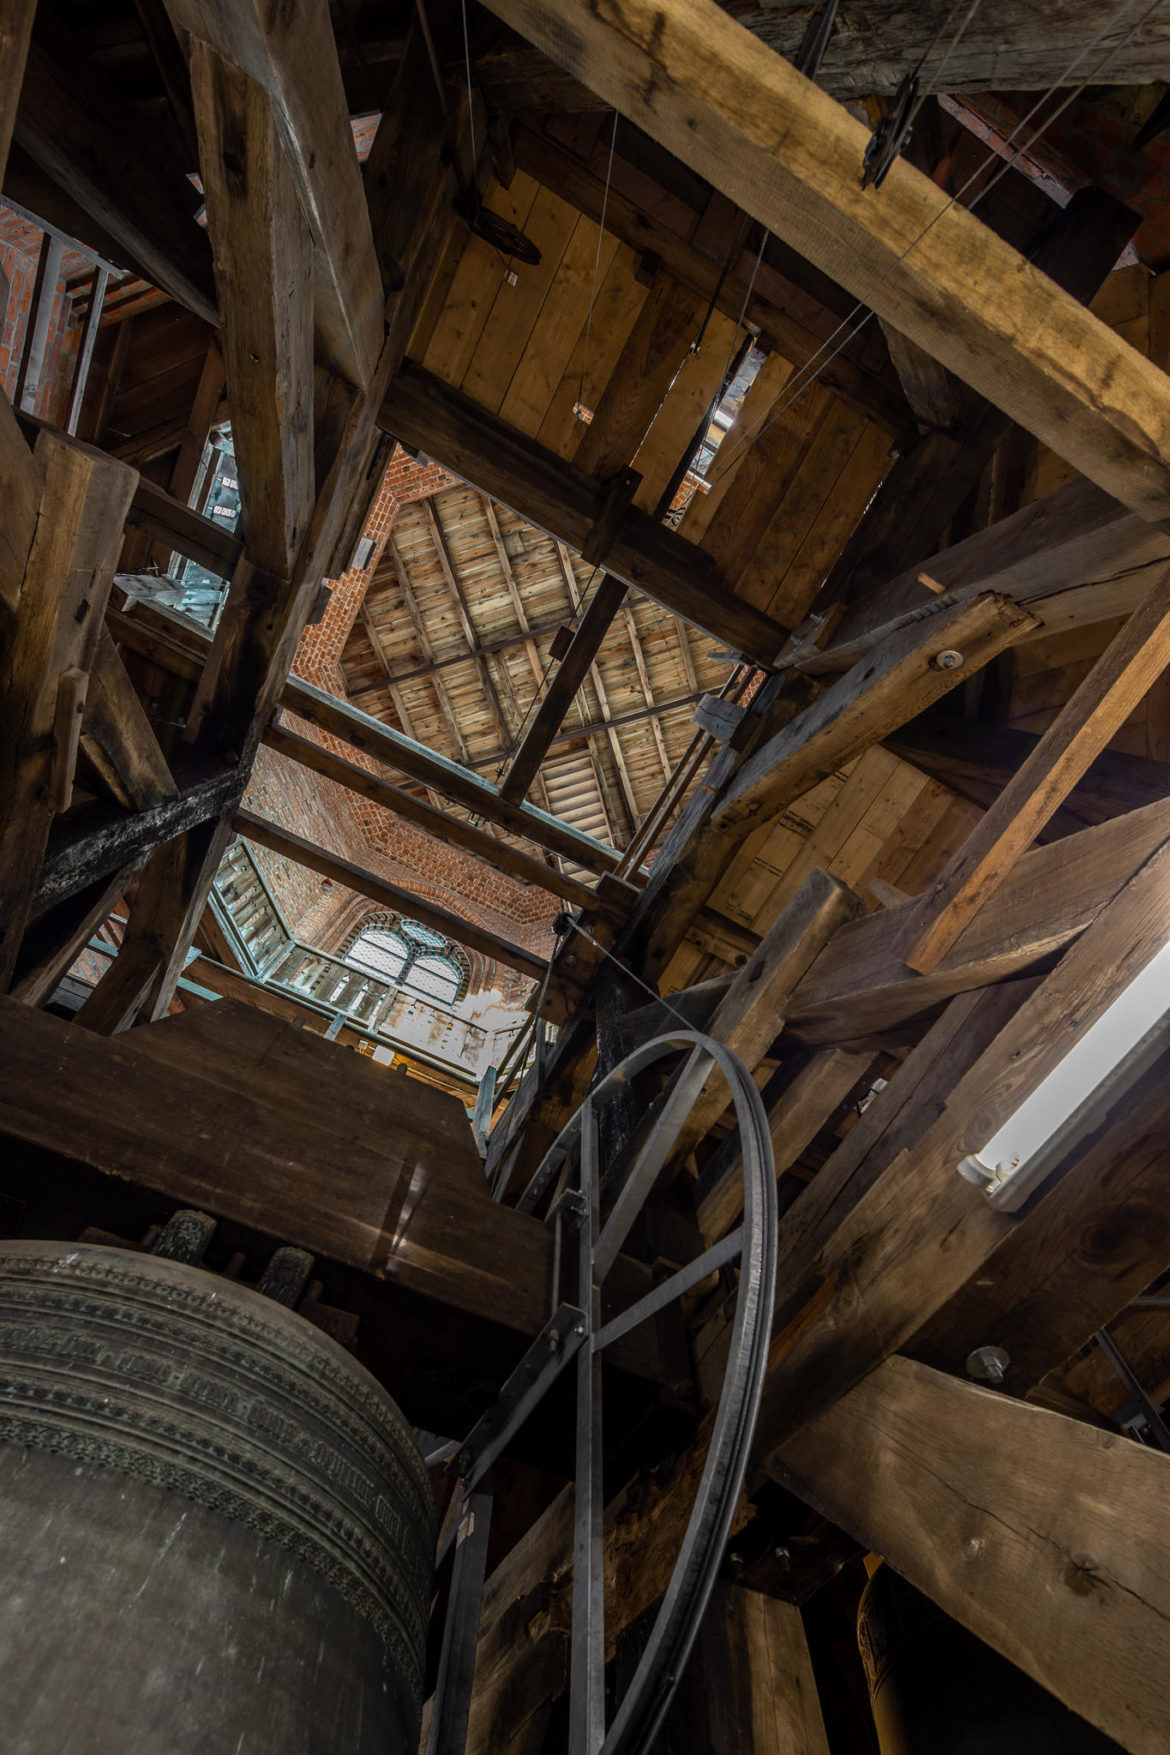 In the bell tower of St. Nicolai